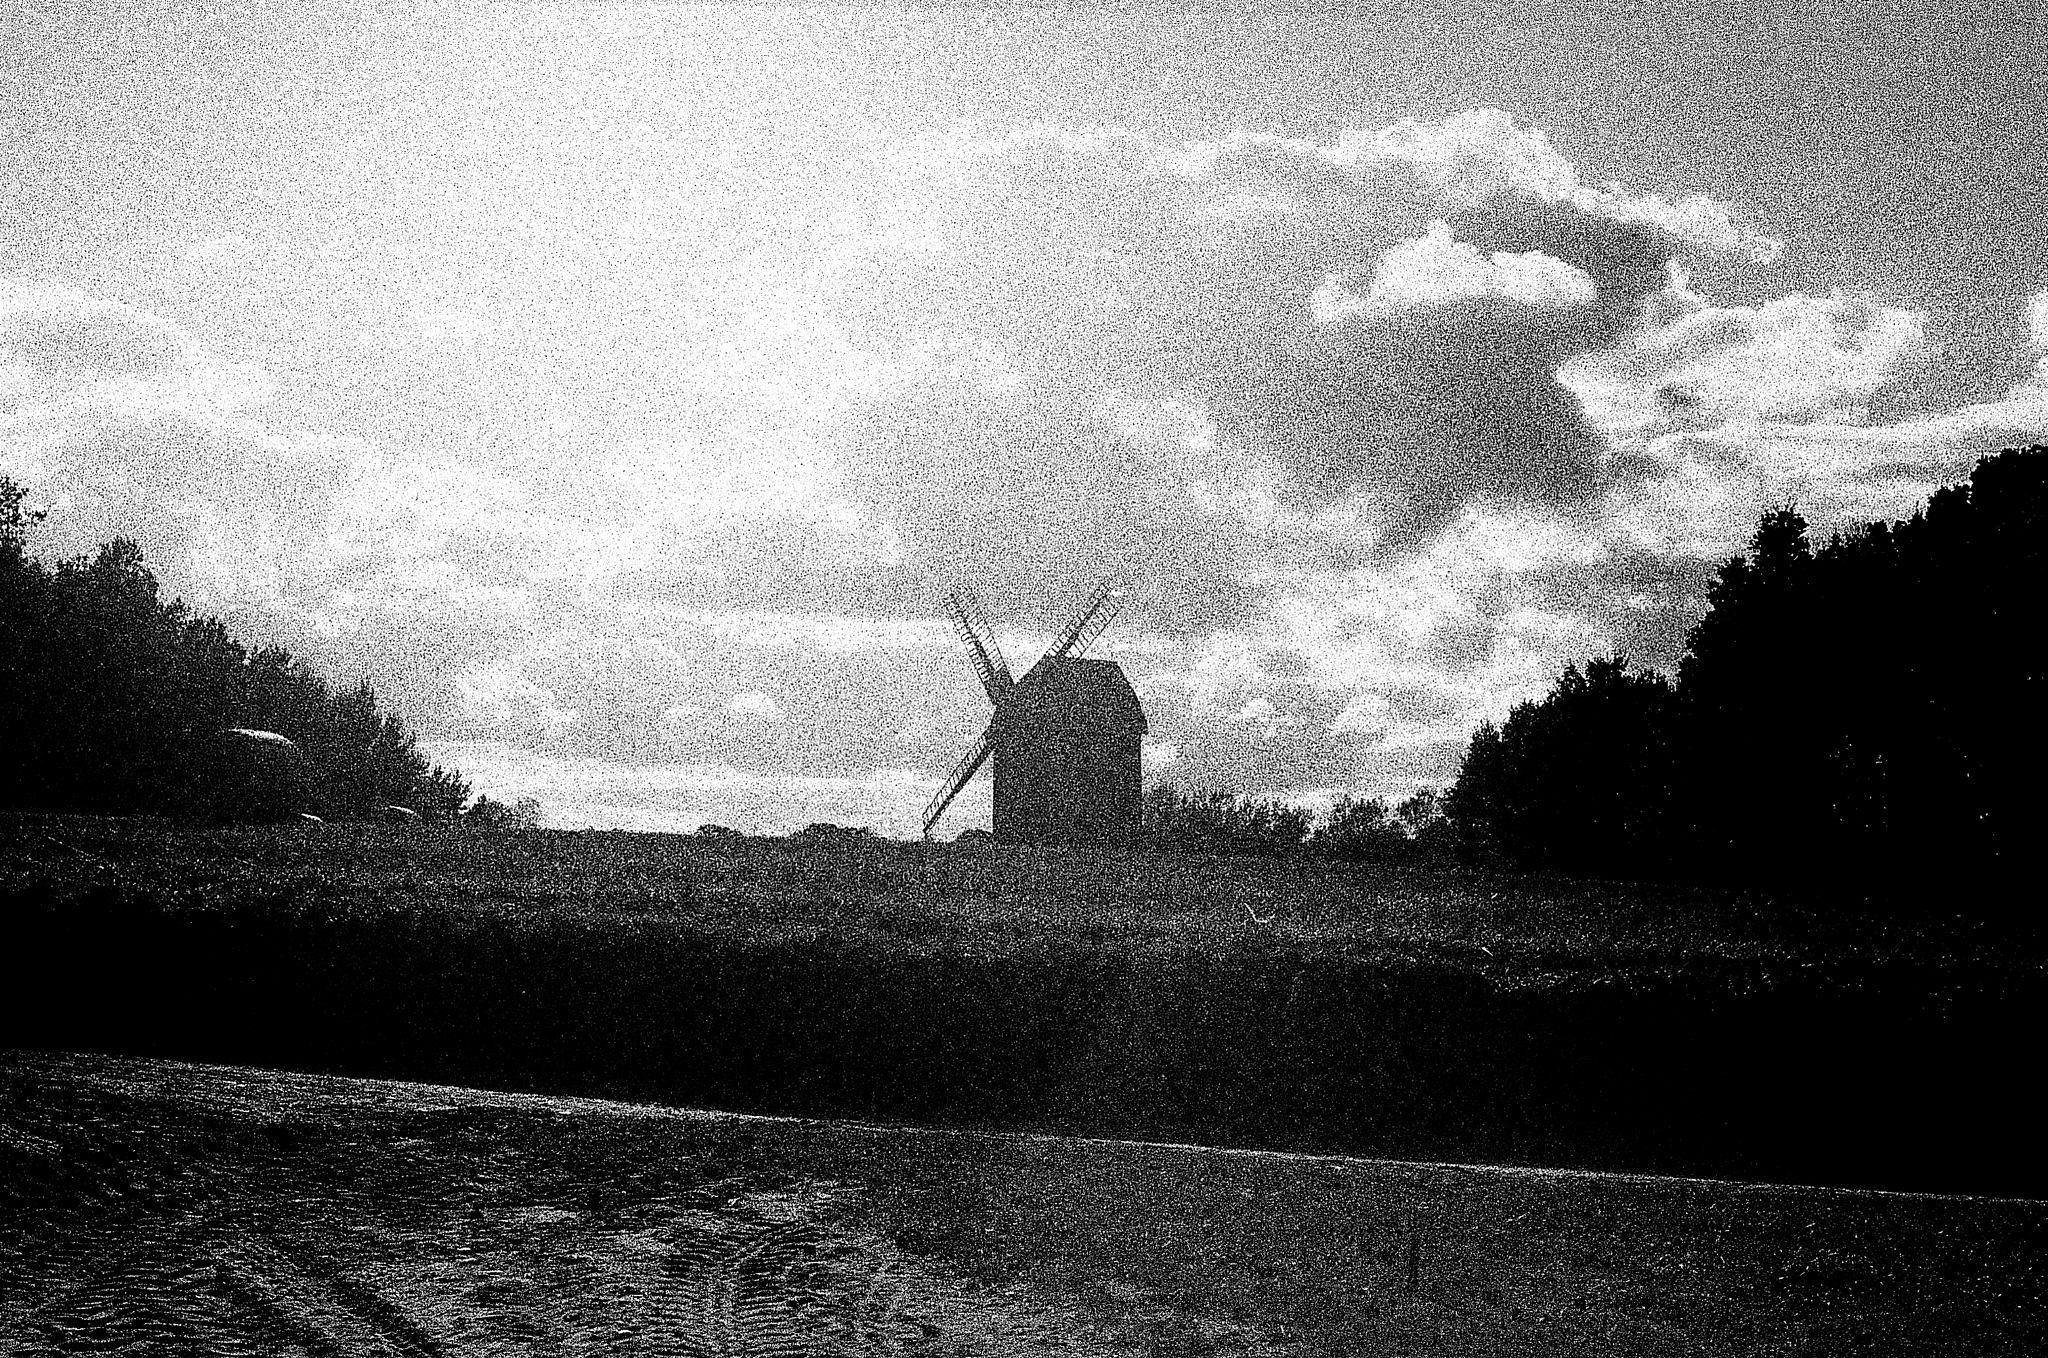 Old Windmill by filiplipinski1